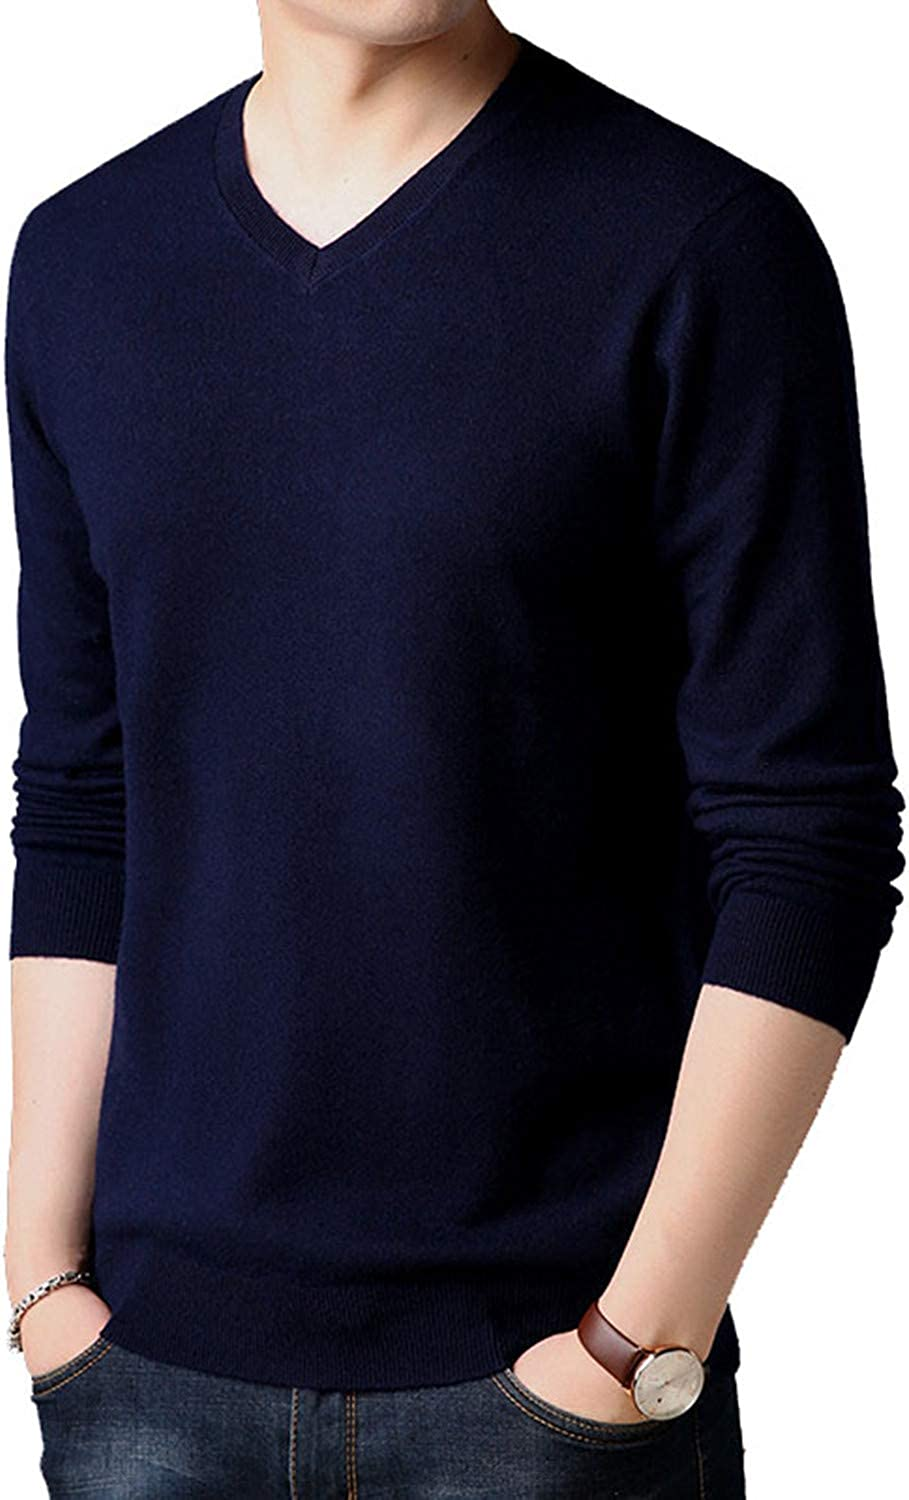 Cyose Popular Classic Pure Color V-Neck Cashmere PulloverThick Warm Wool Sweaters 03